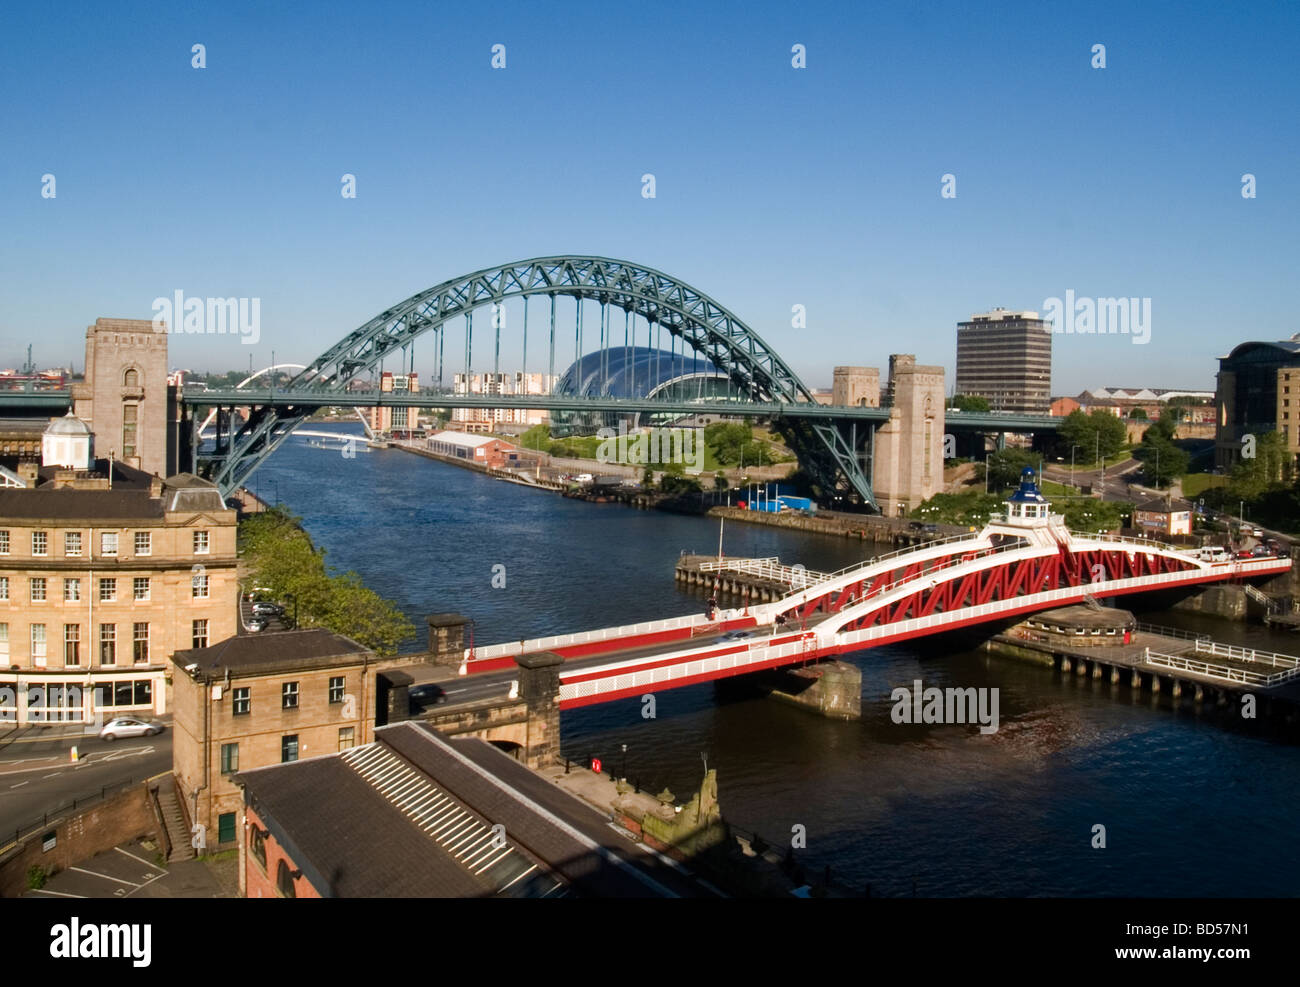 The Quayside: Newcastle Upon Tyne - Stock Image